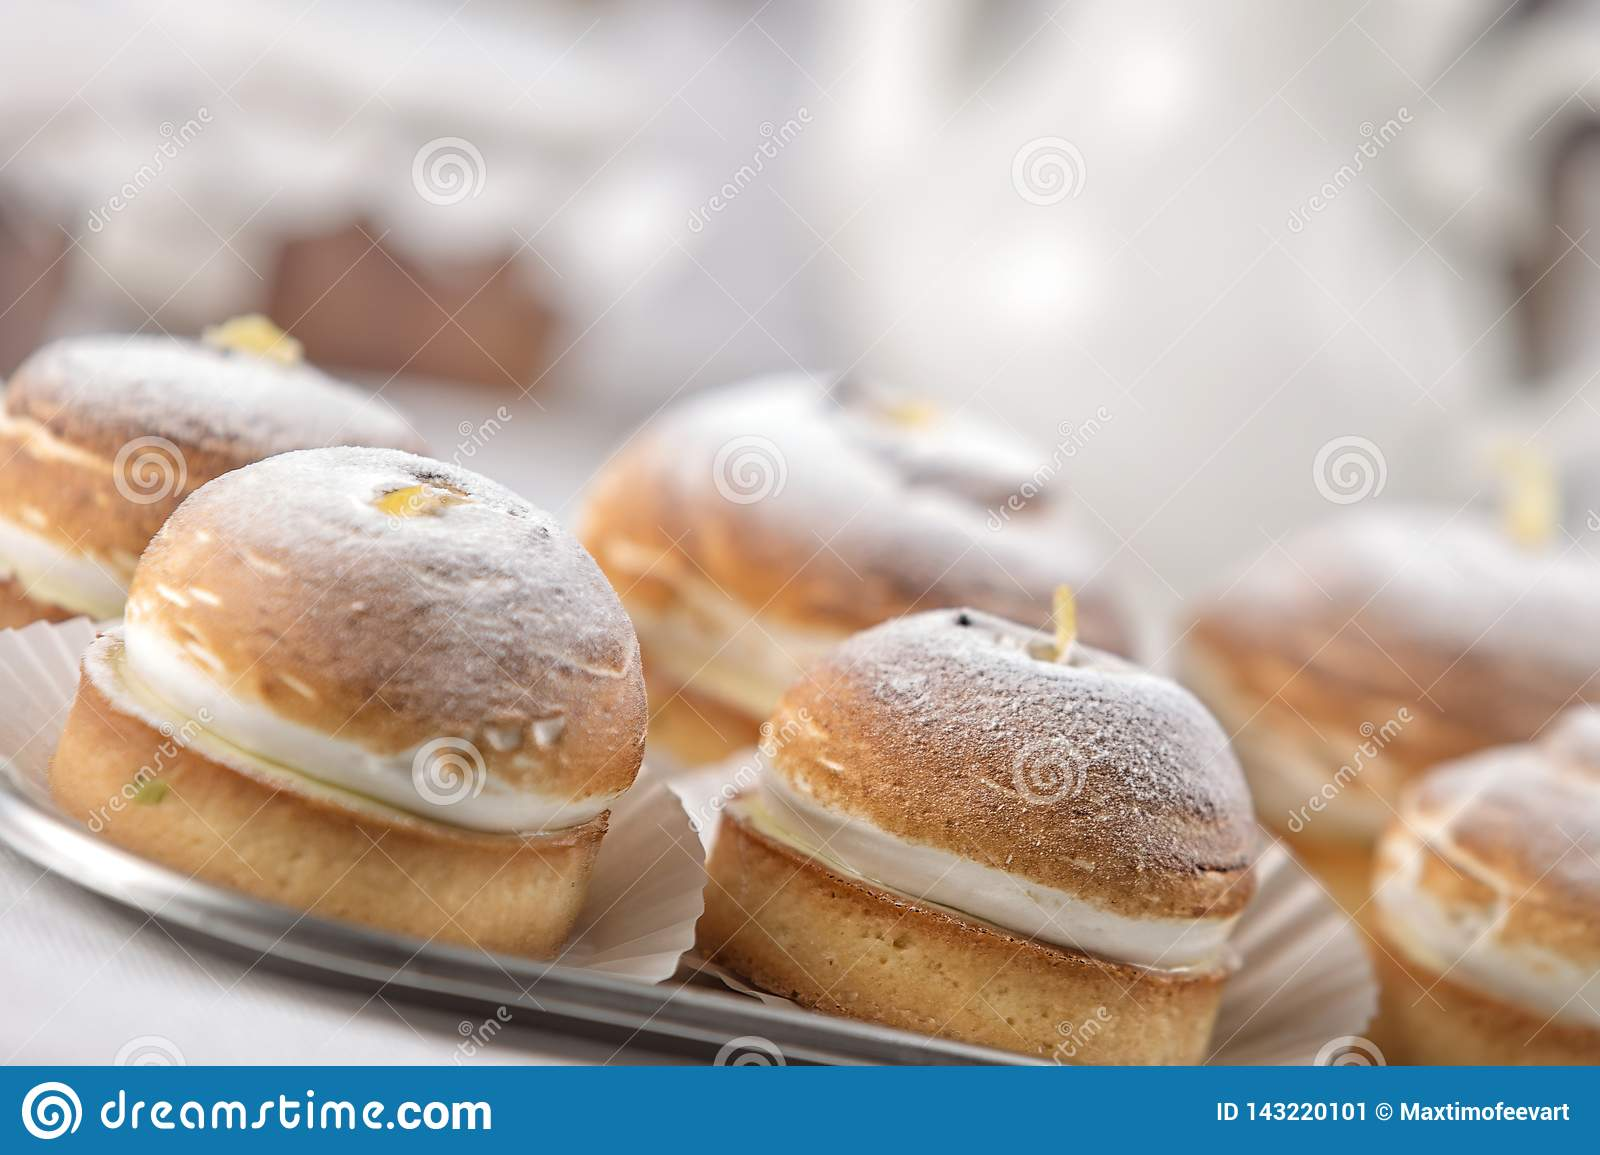 cakes on a tray, restaurant setting